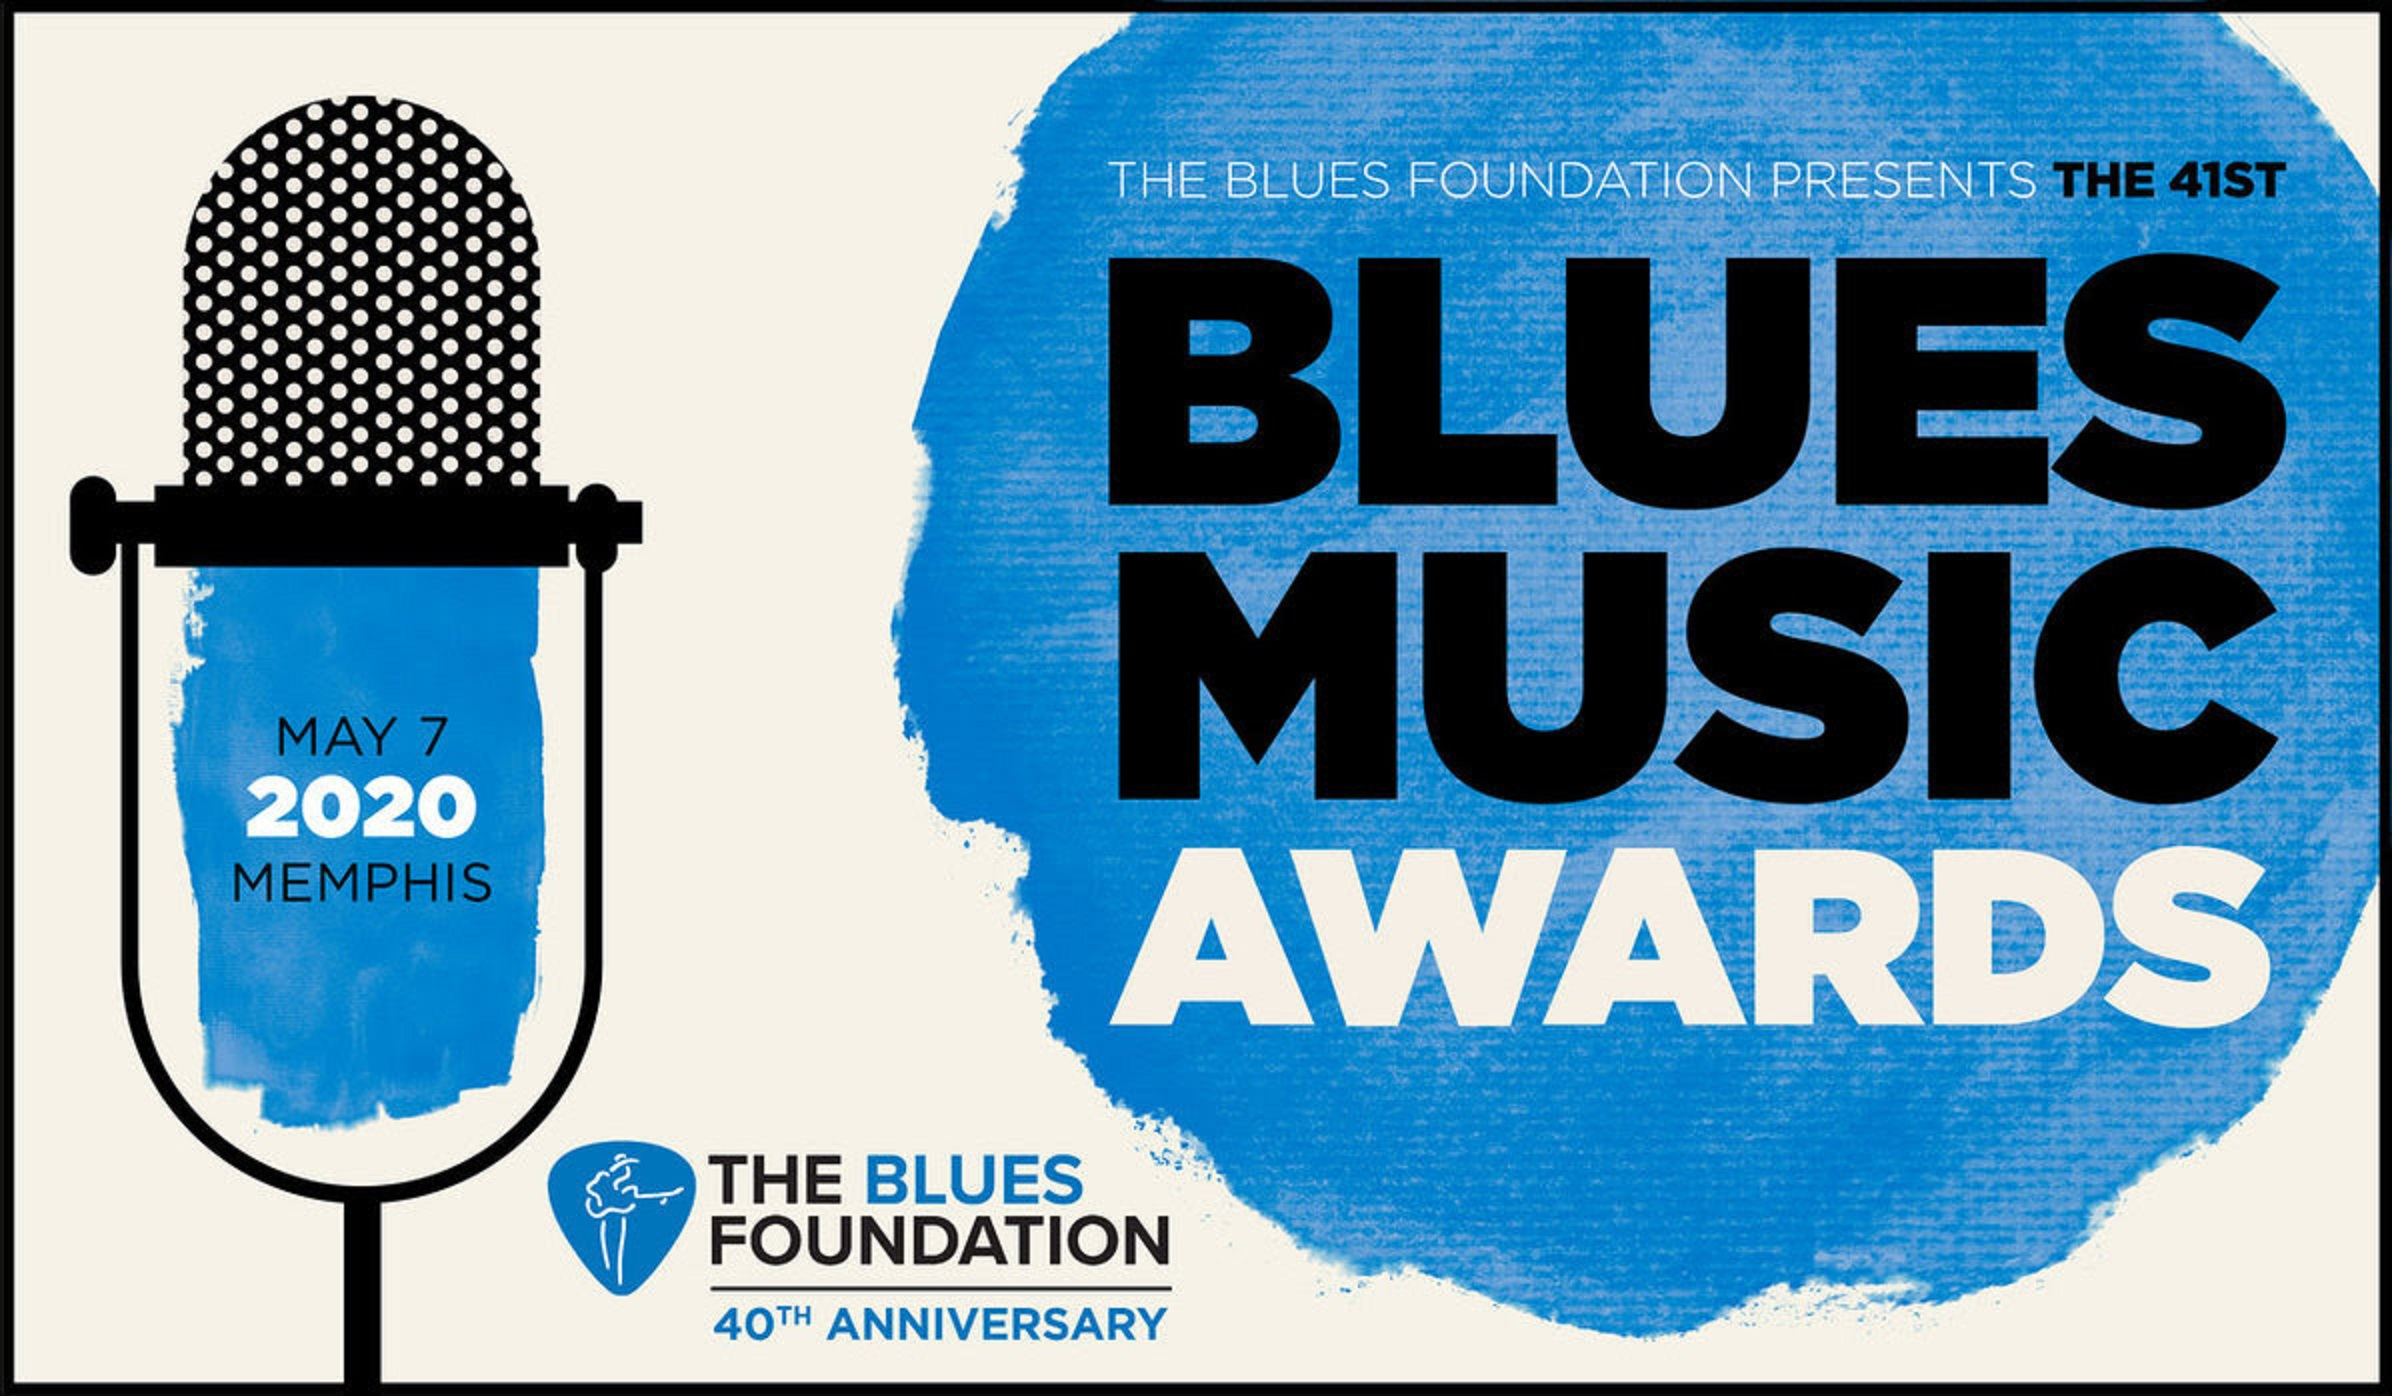 41st Annual Blues Music Awards nominees announced